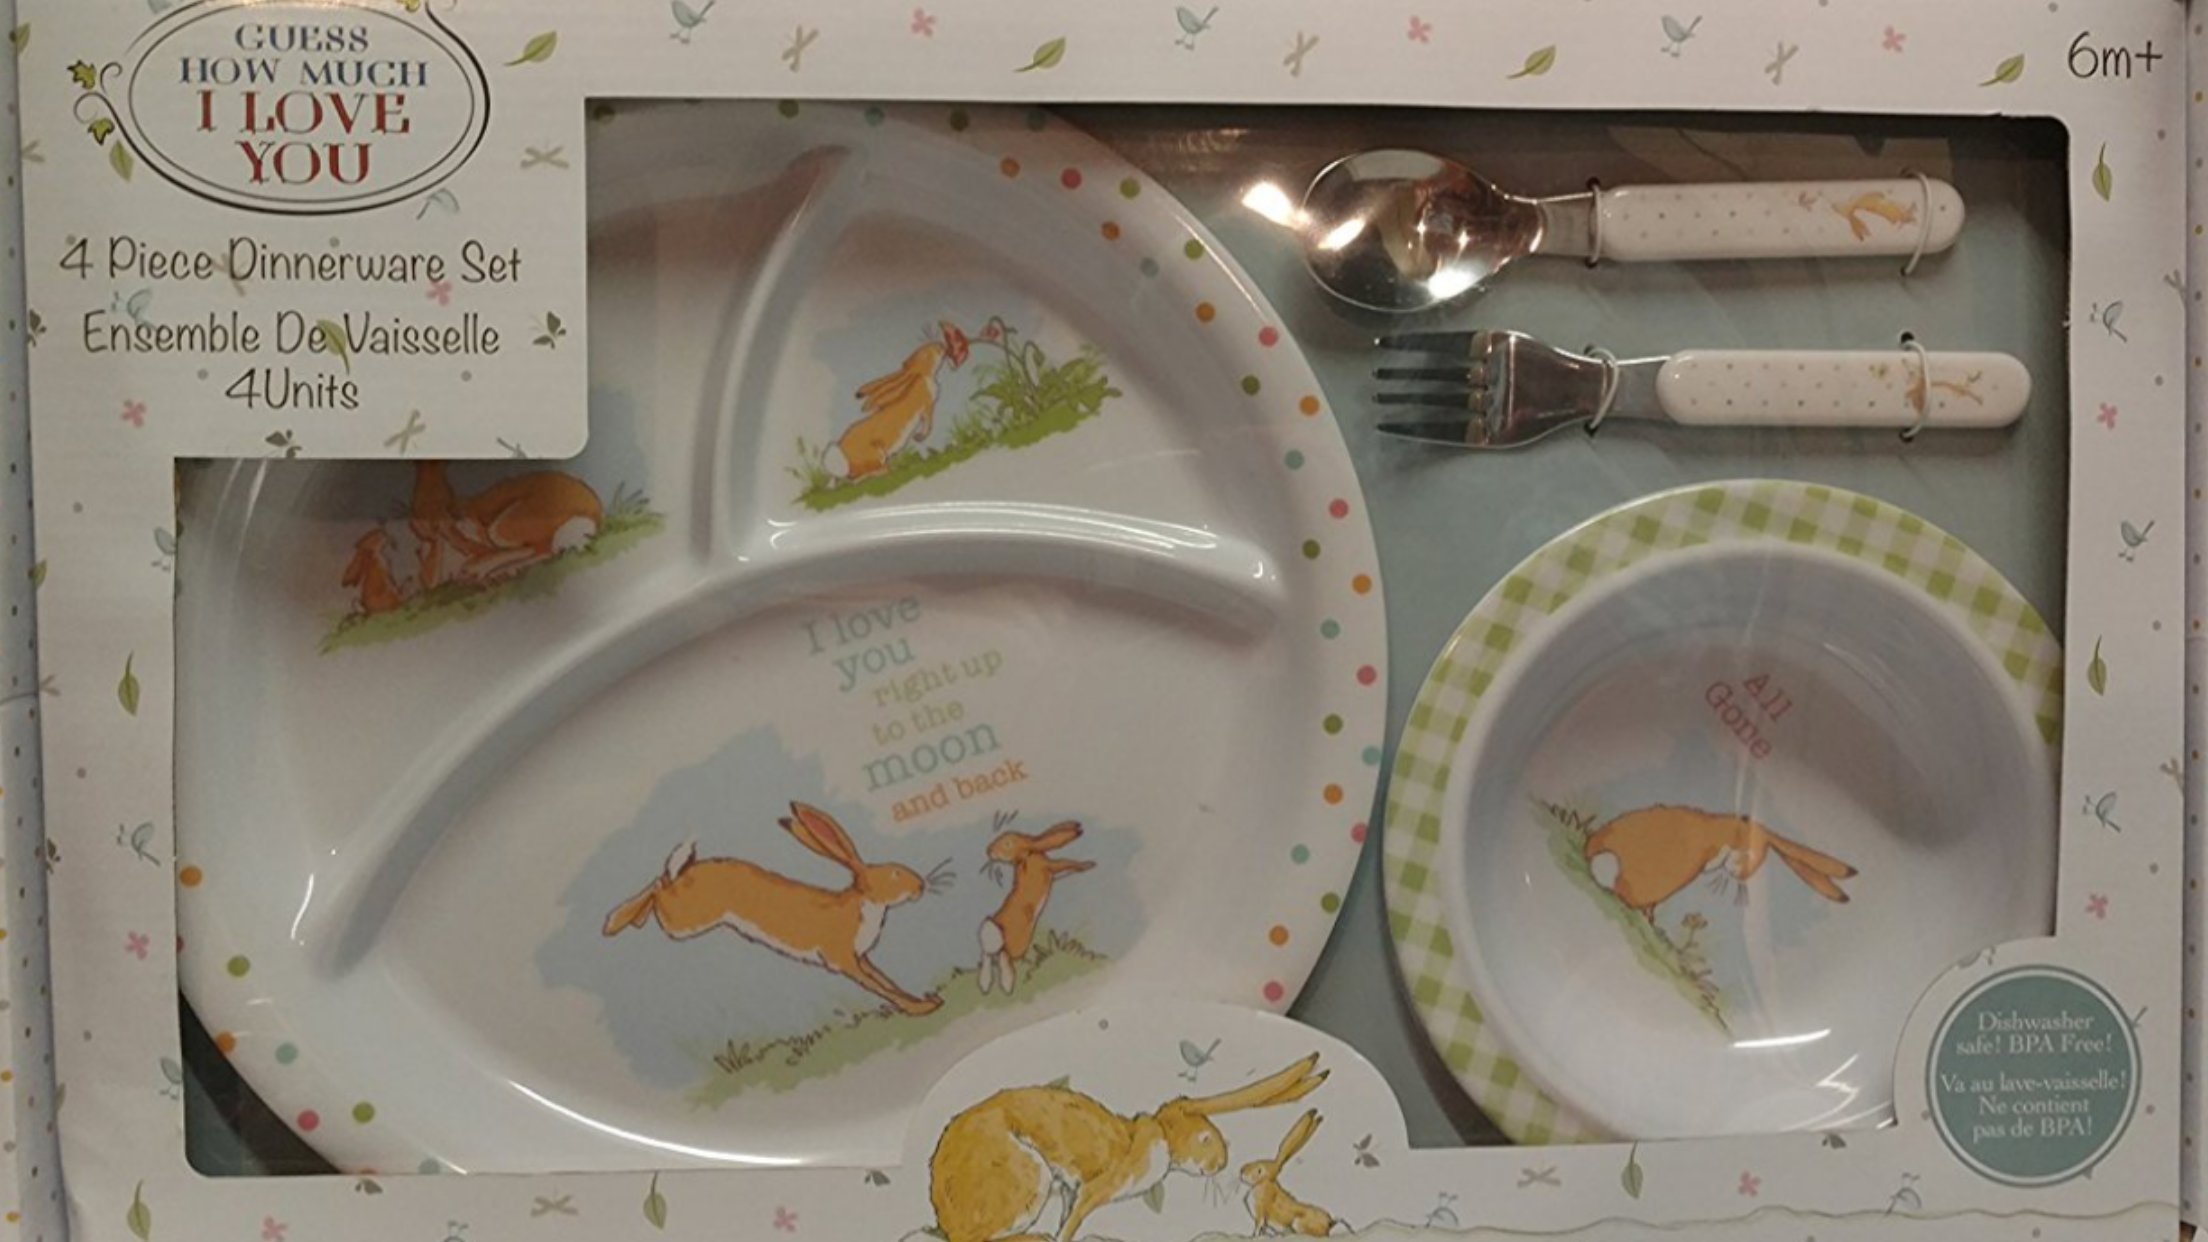 Guess how much I love you 4 piece dinnerware set